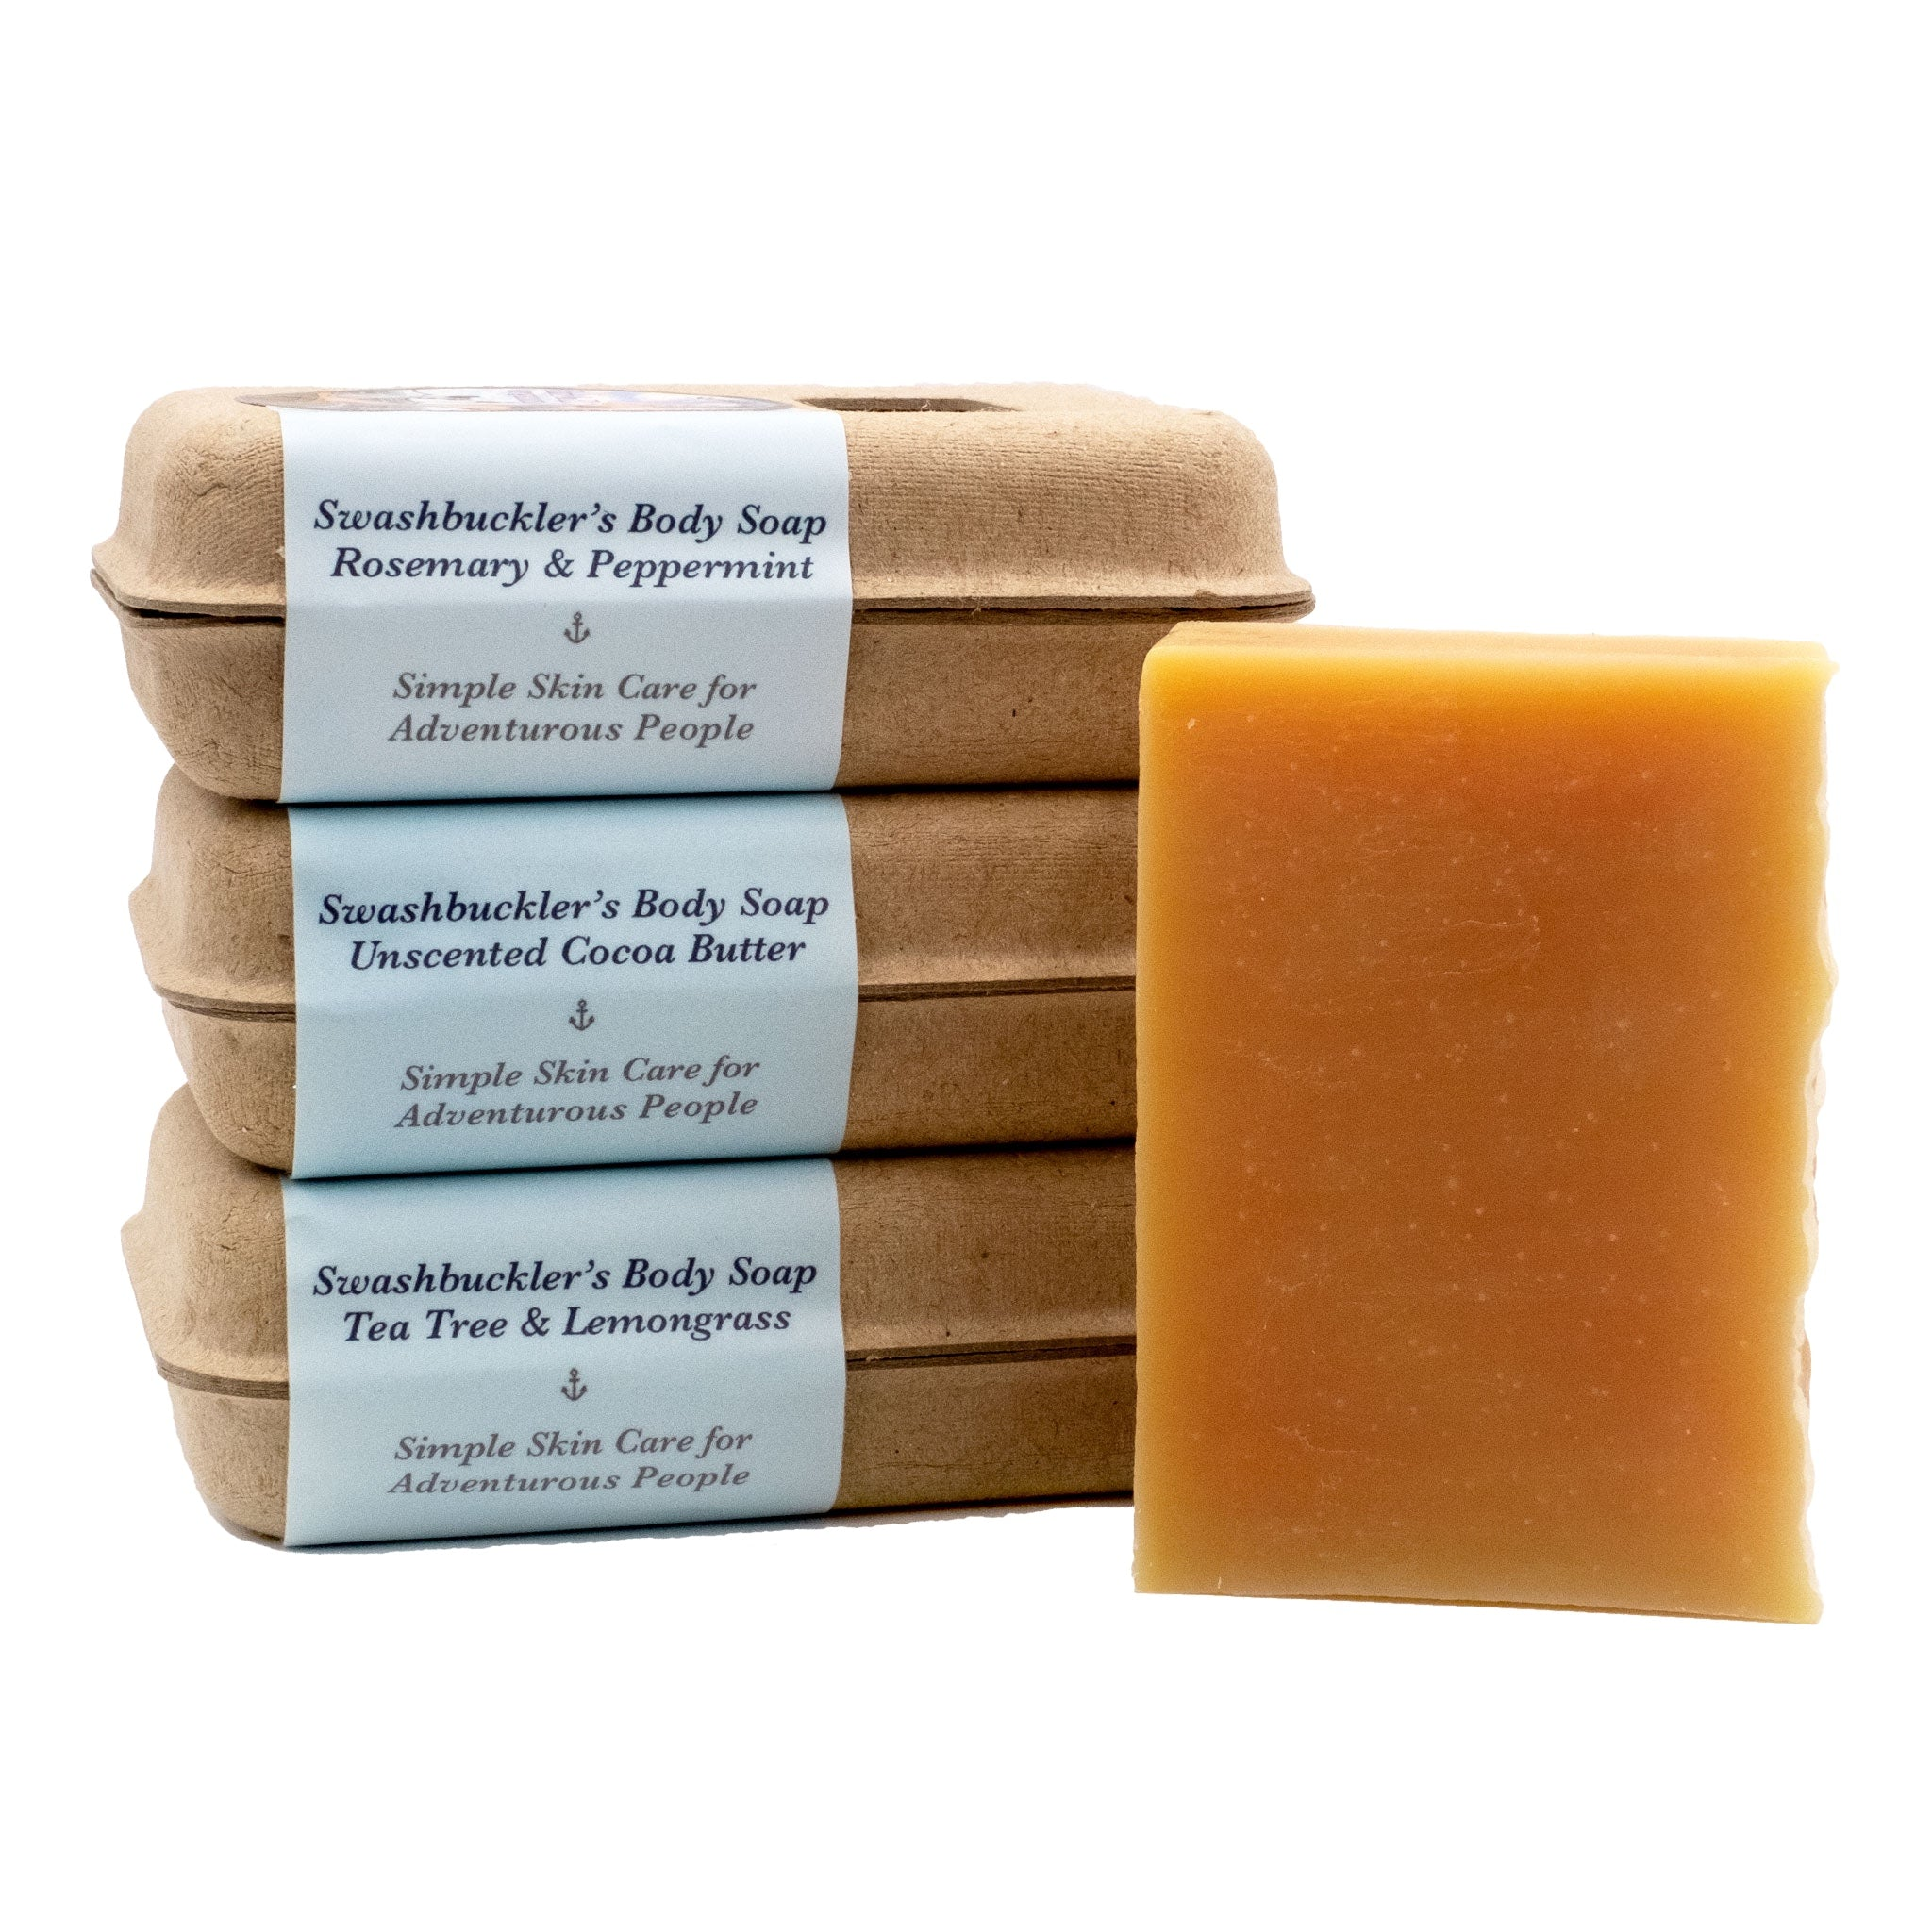 Bar of Organic Palm Oil Free Luxurious Body Soap in lavender-cedarwood, rosemary-peppermint, tea tree-lemongrass and unscented